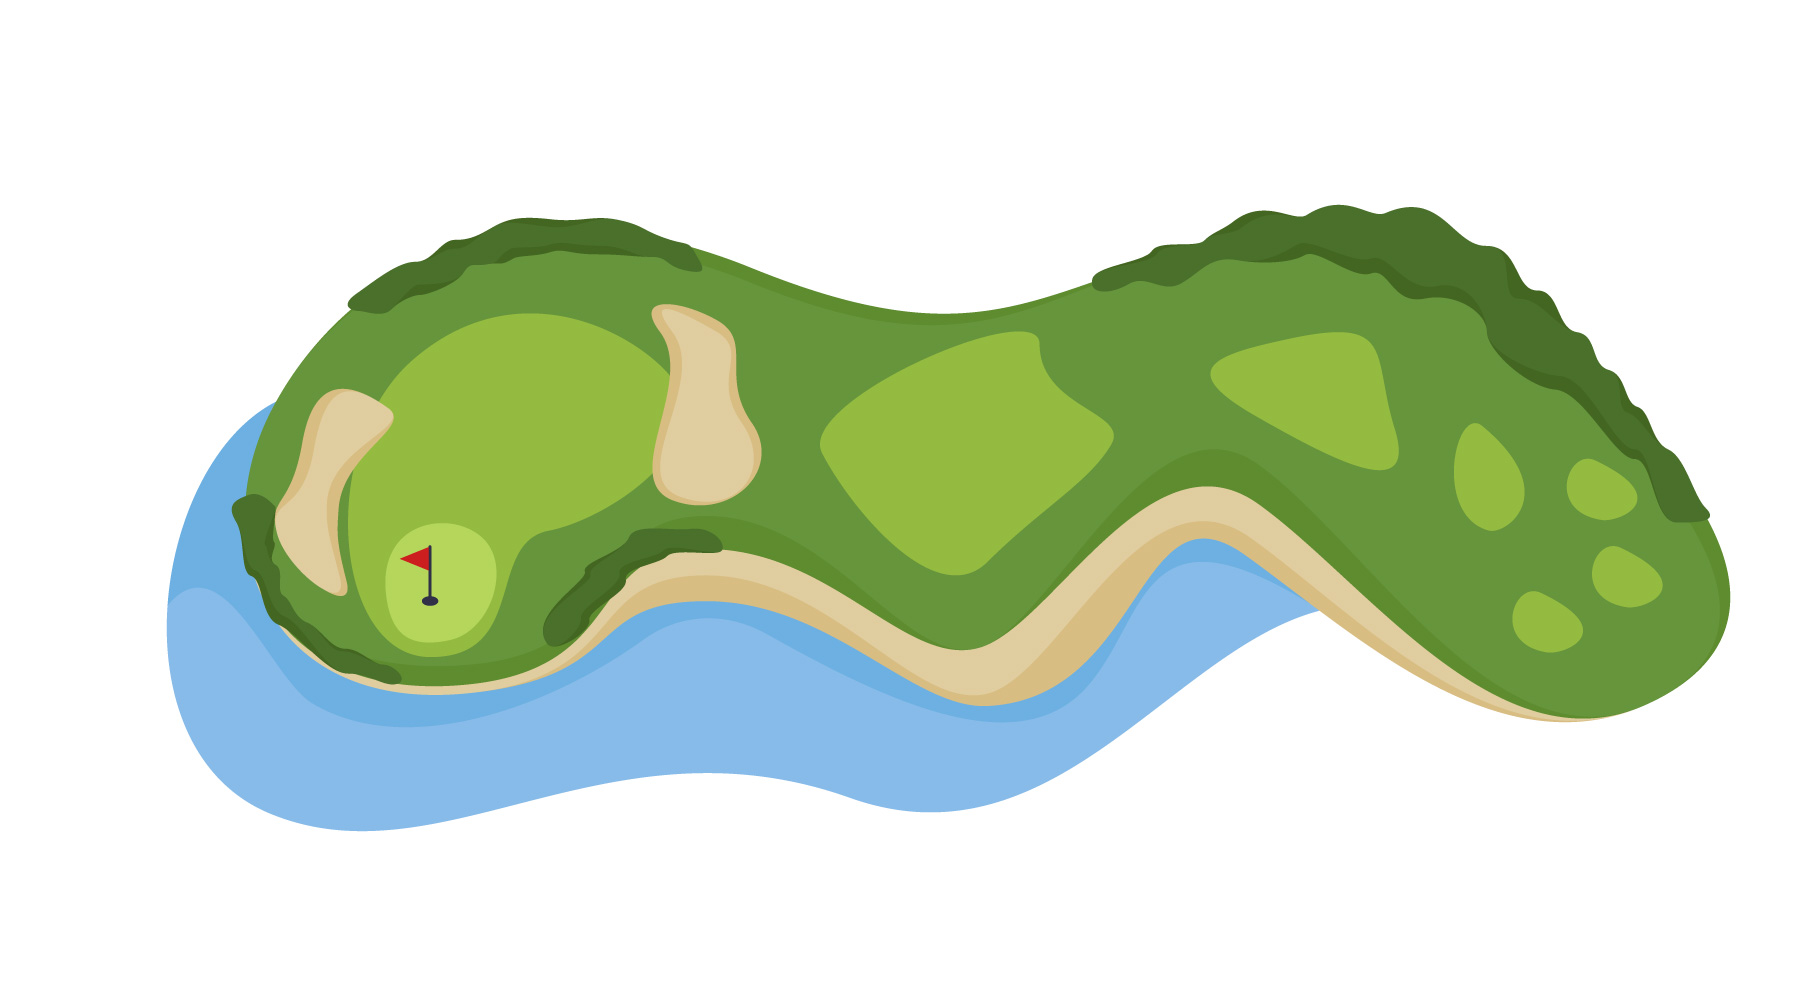 Golf Course Hole with bunker and water Vectors.